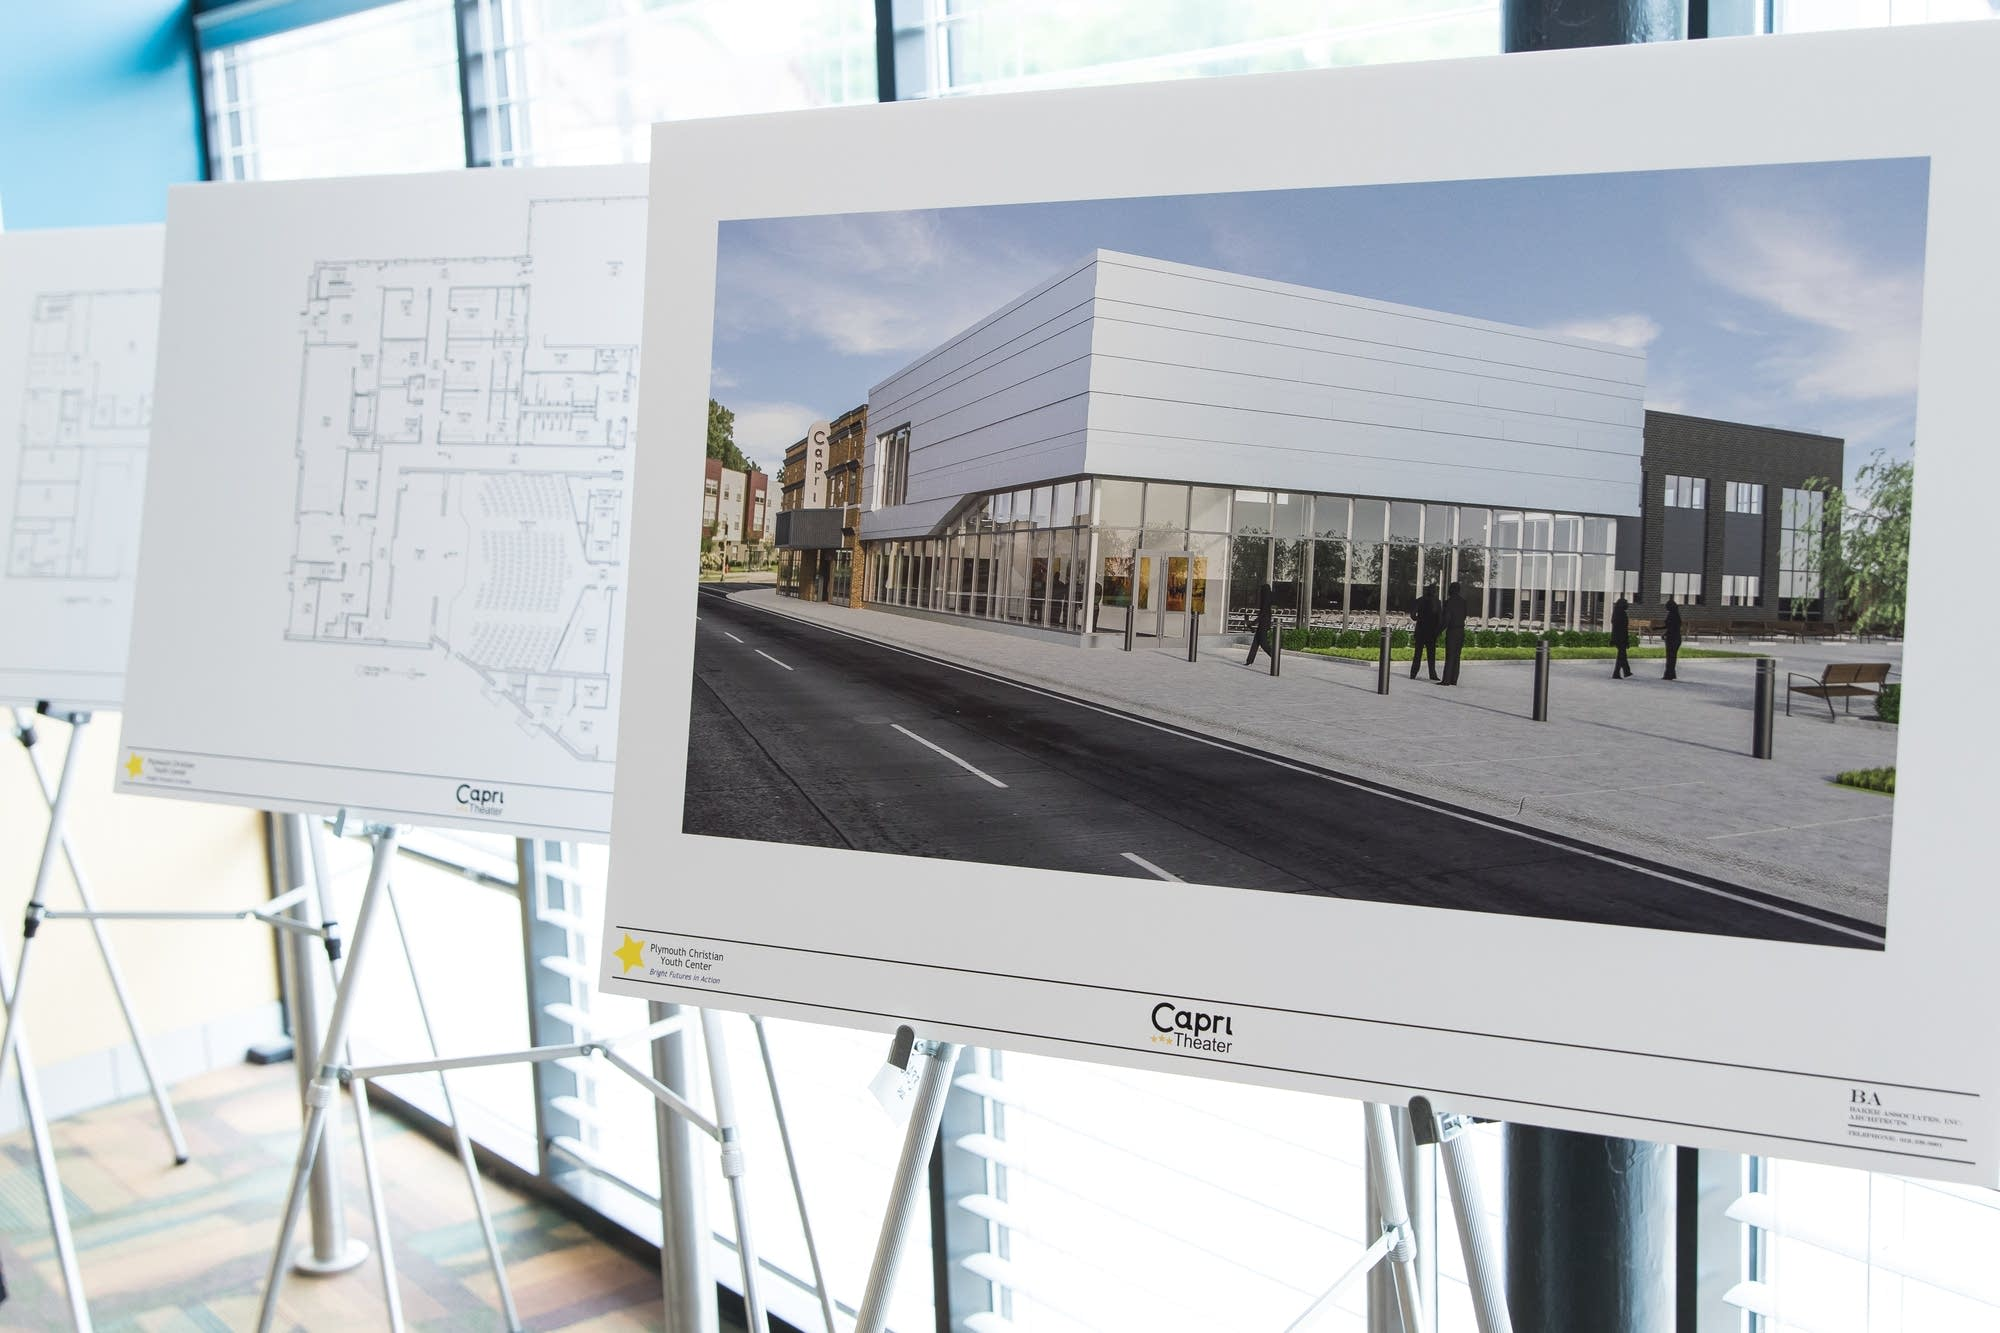 Blueprints and artist's renditions of the new Capri Theater.